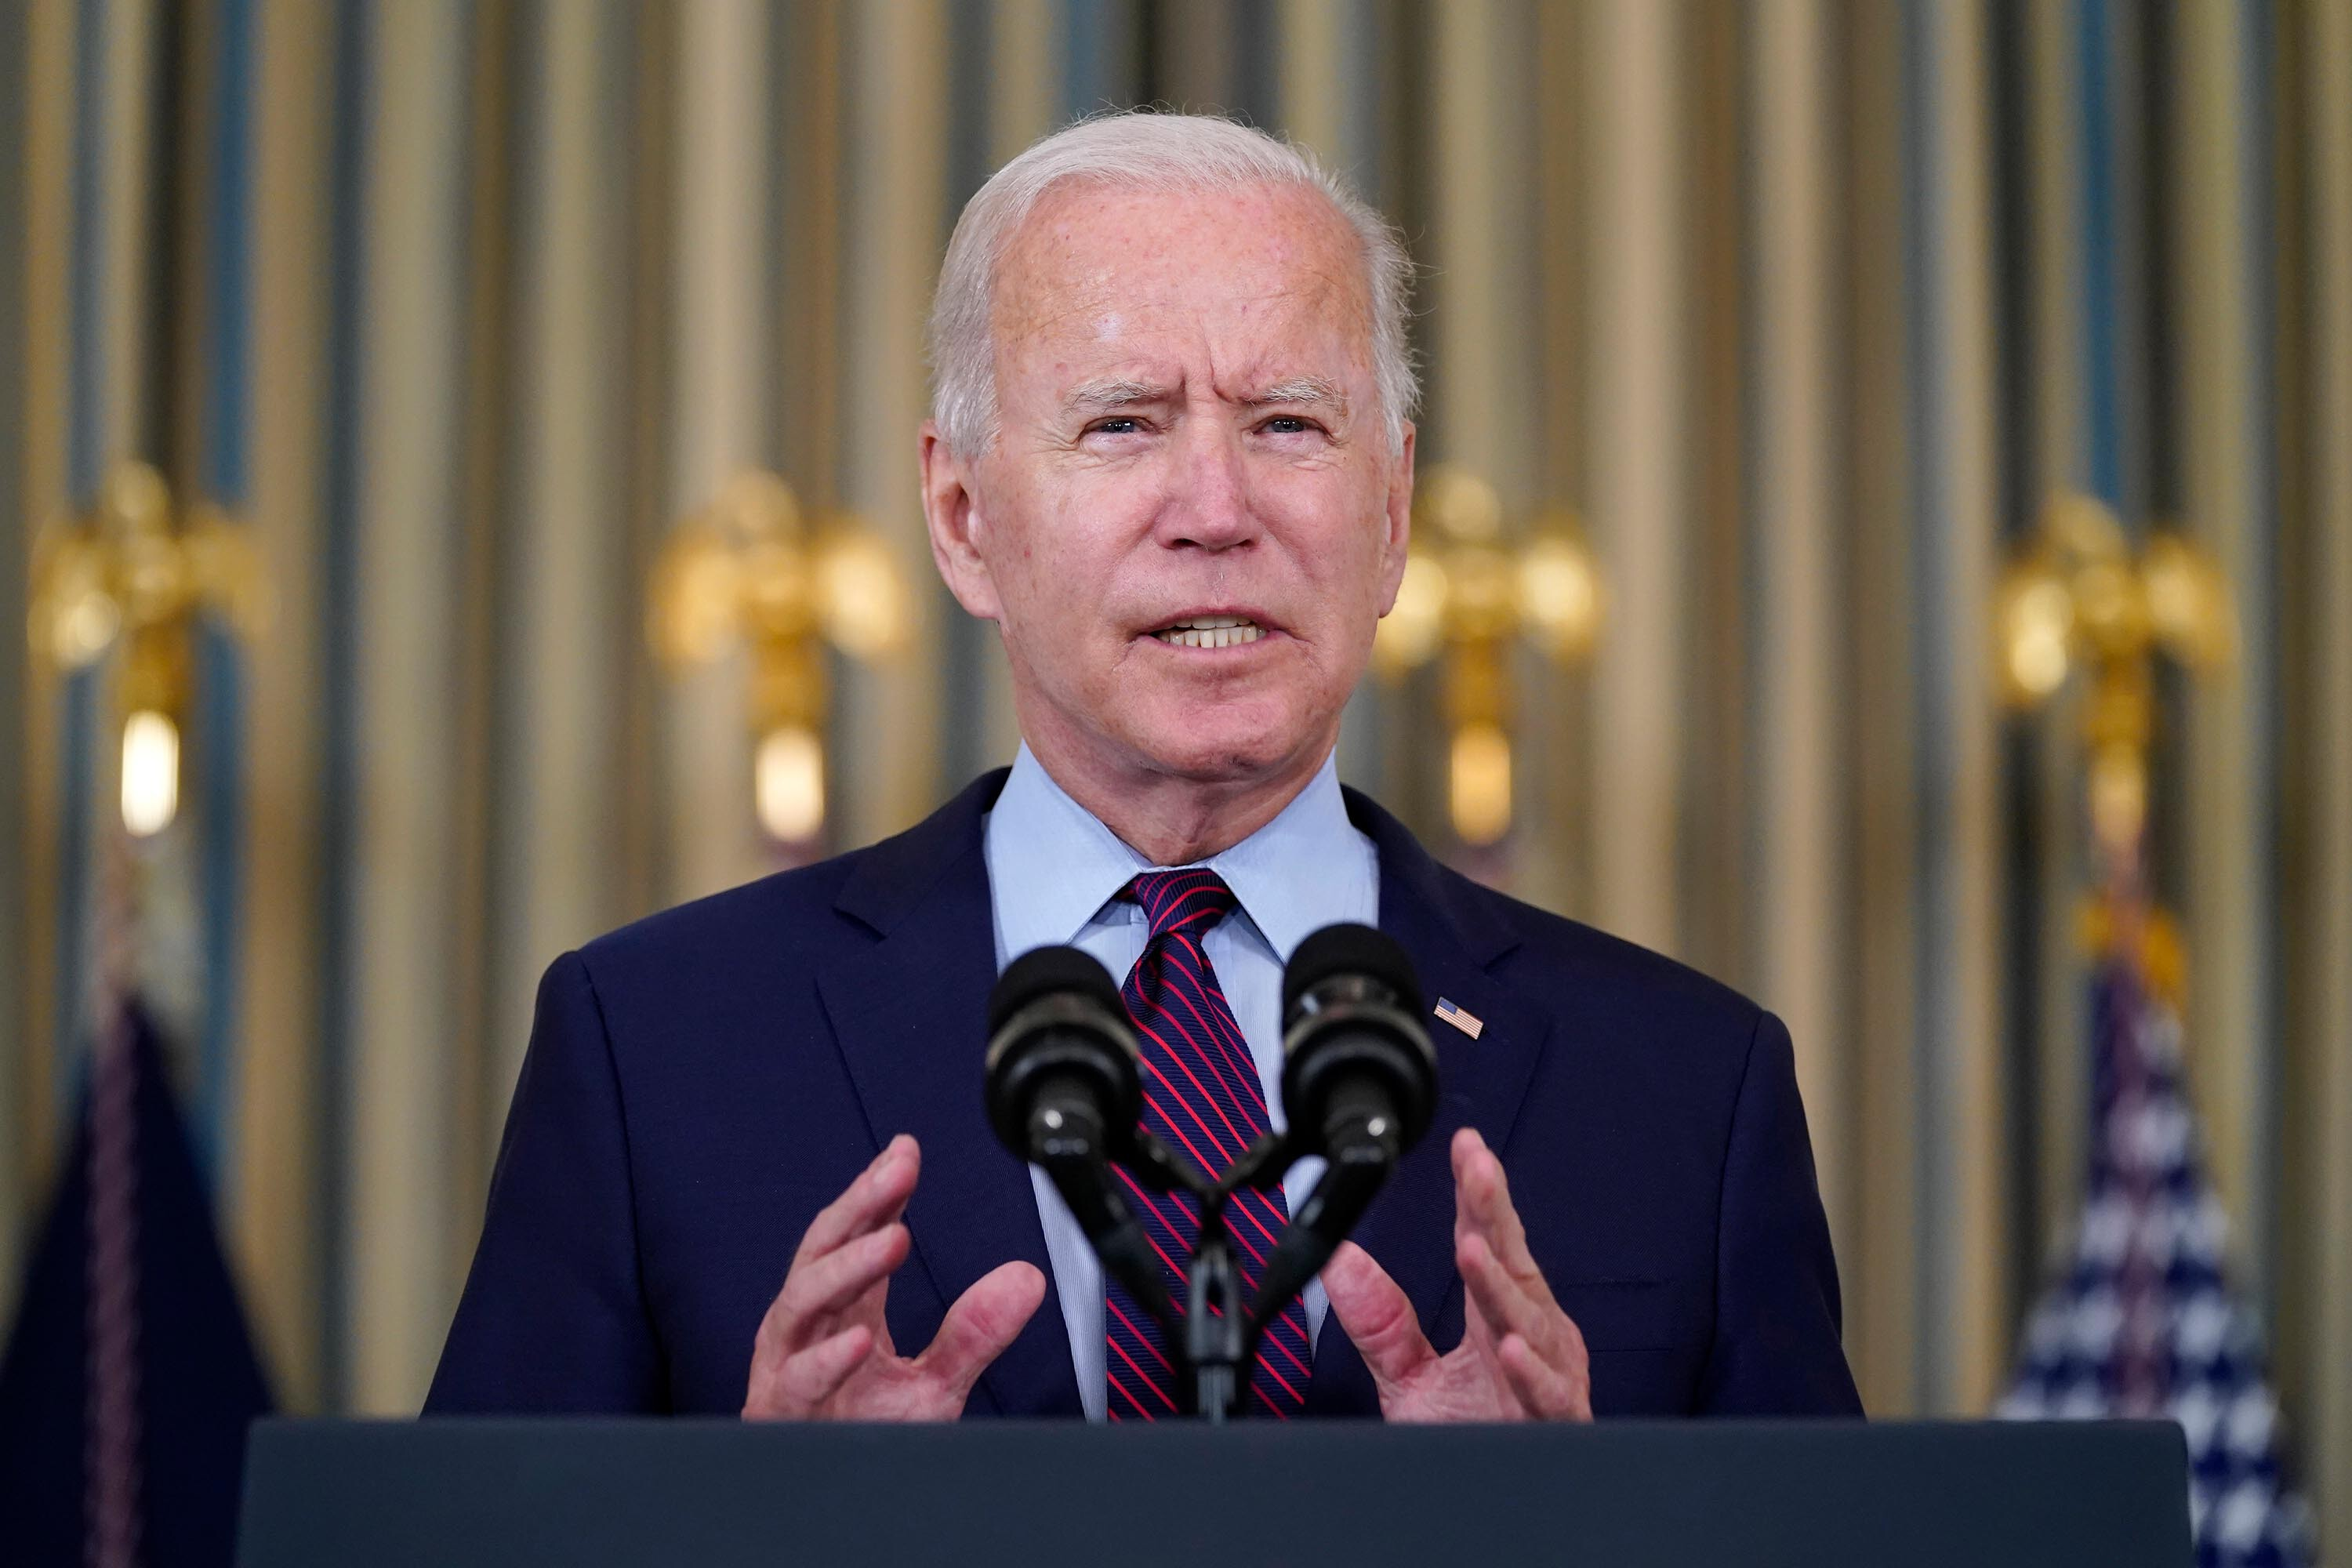 Biden looks to move past Capitol Hill drama as he takes infrastructure pitch back on the road